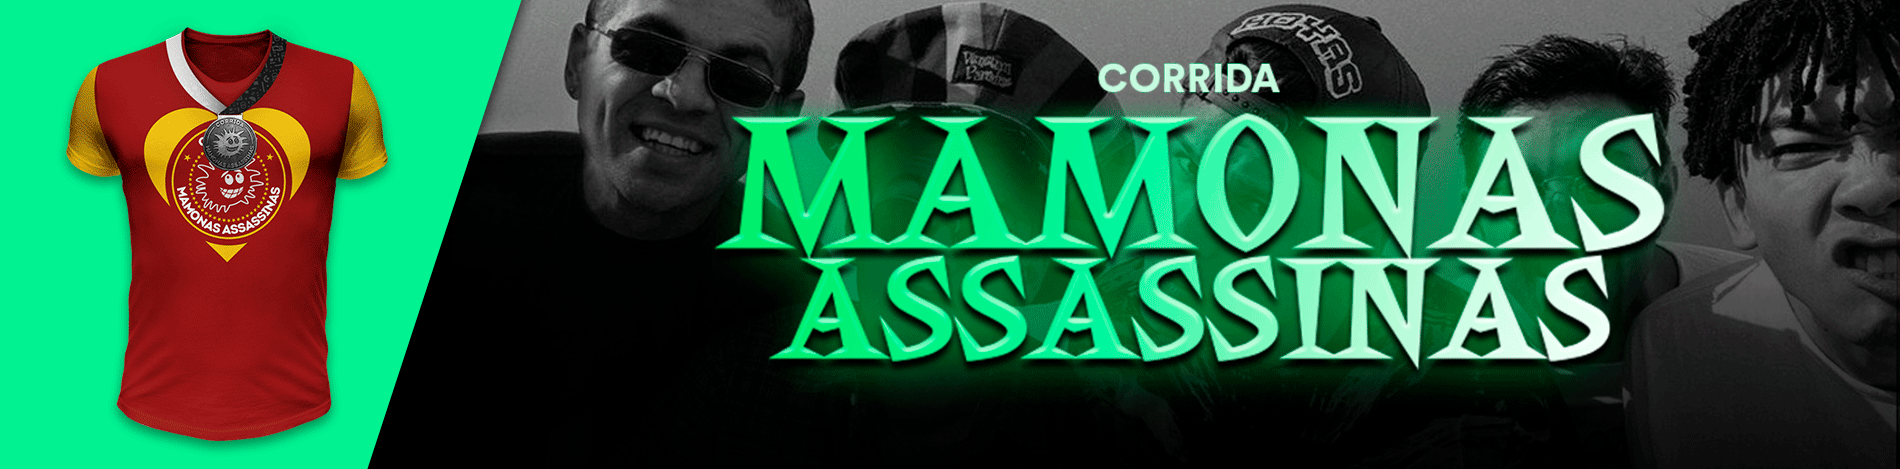 CORRIDA MAMONAS ASSASSINAS